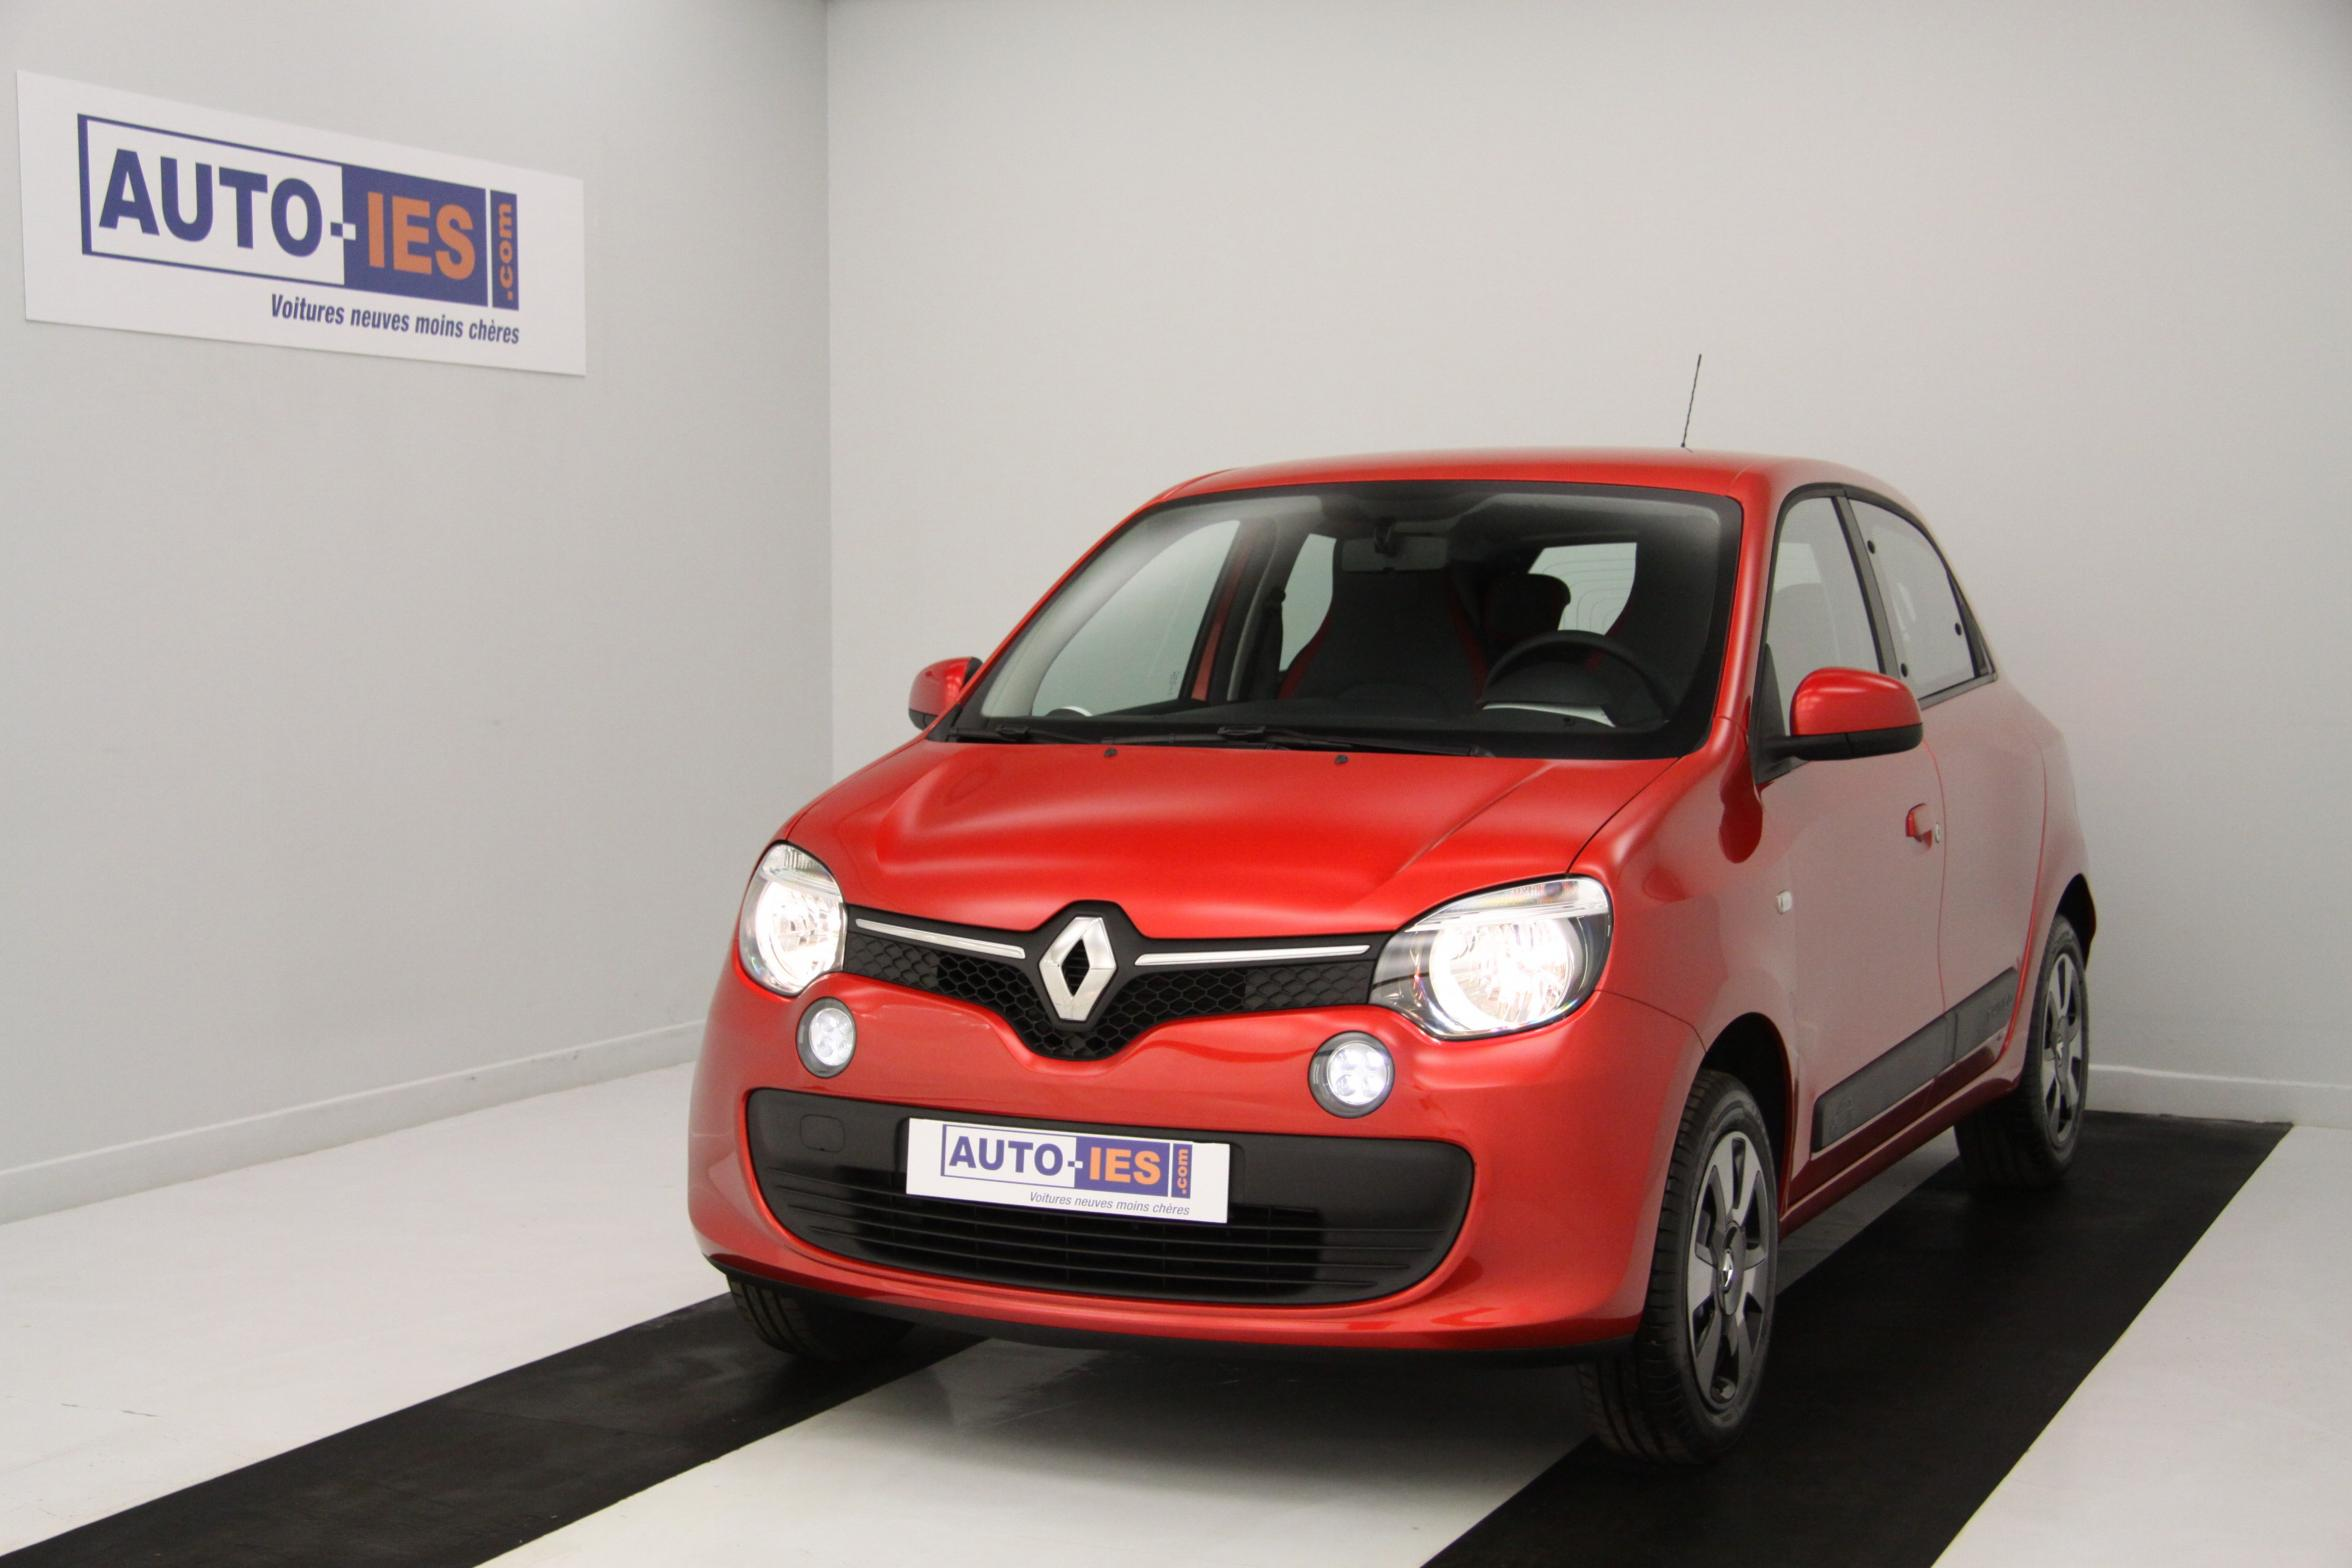 photos de renault nouvelle twingo 1 0 sce 70 eco2 zen pack city rouge flamme avec options 11. Black Bedroom Furniture Sets. Home Design Ideas